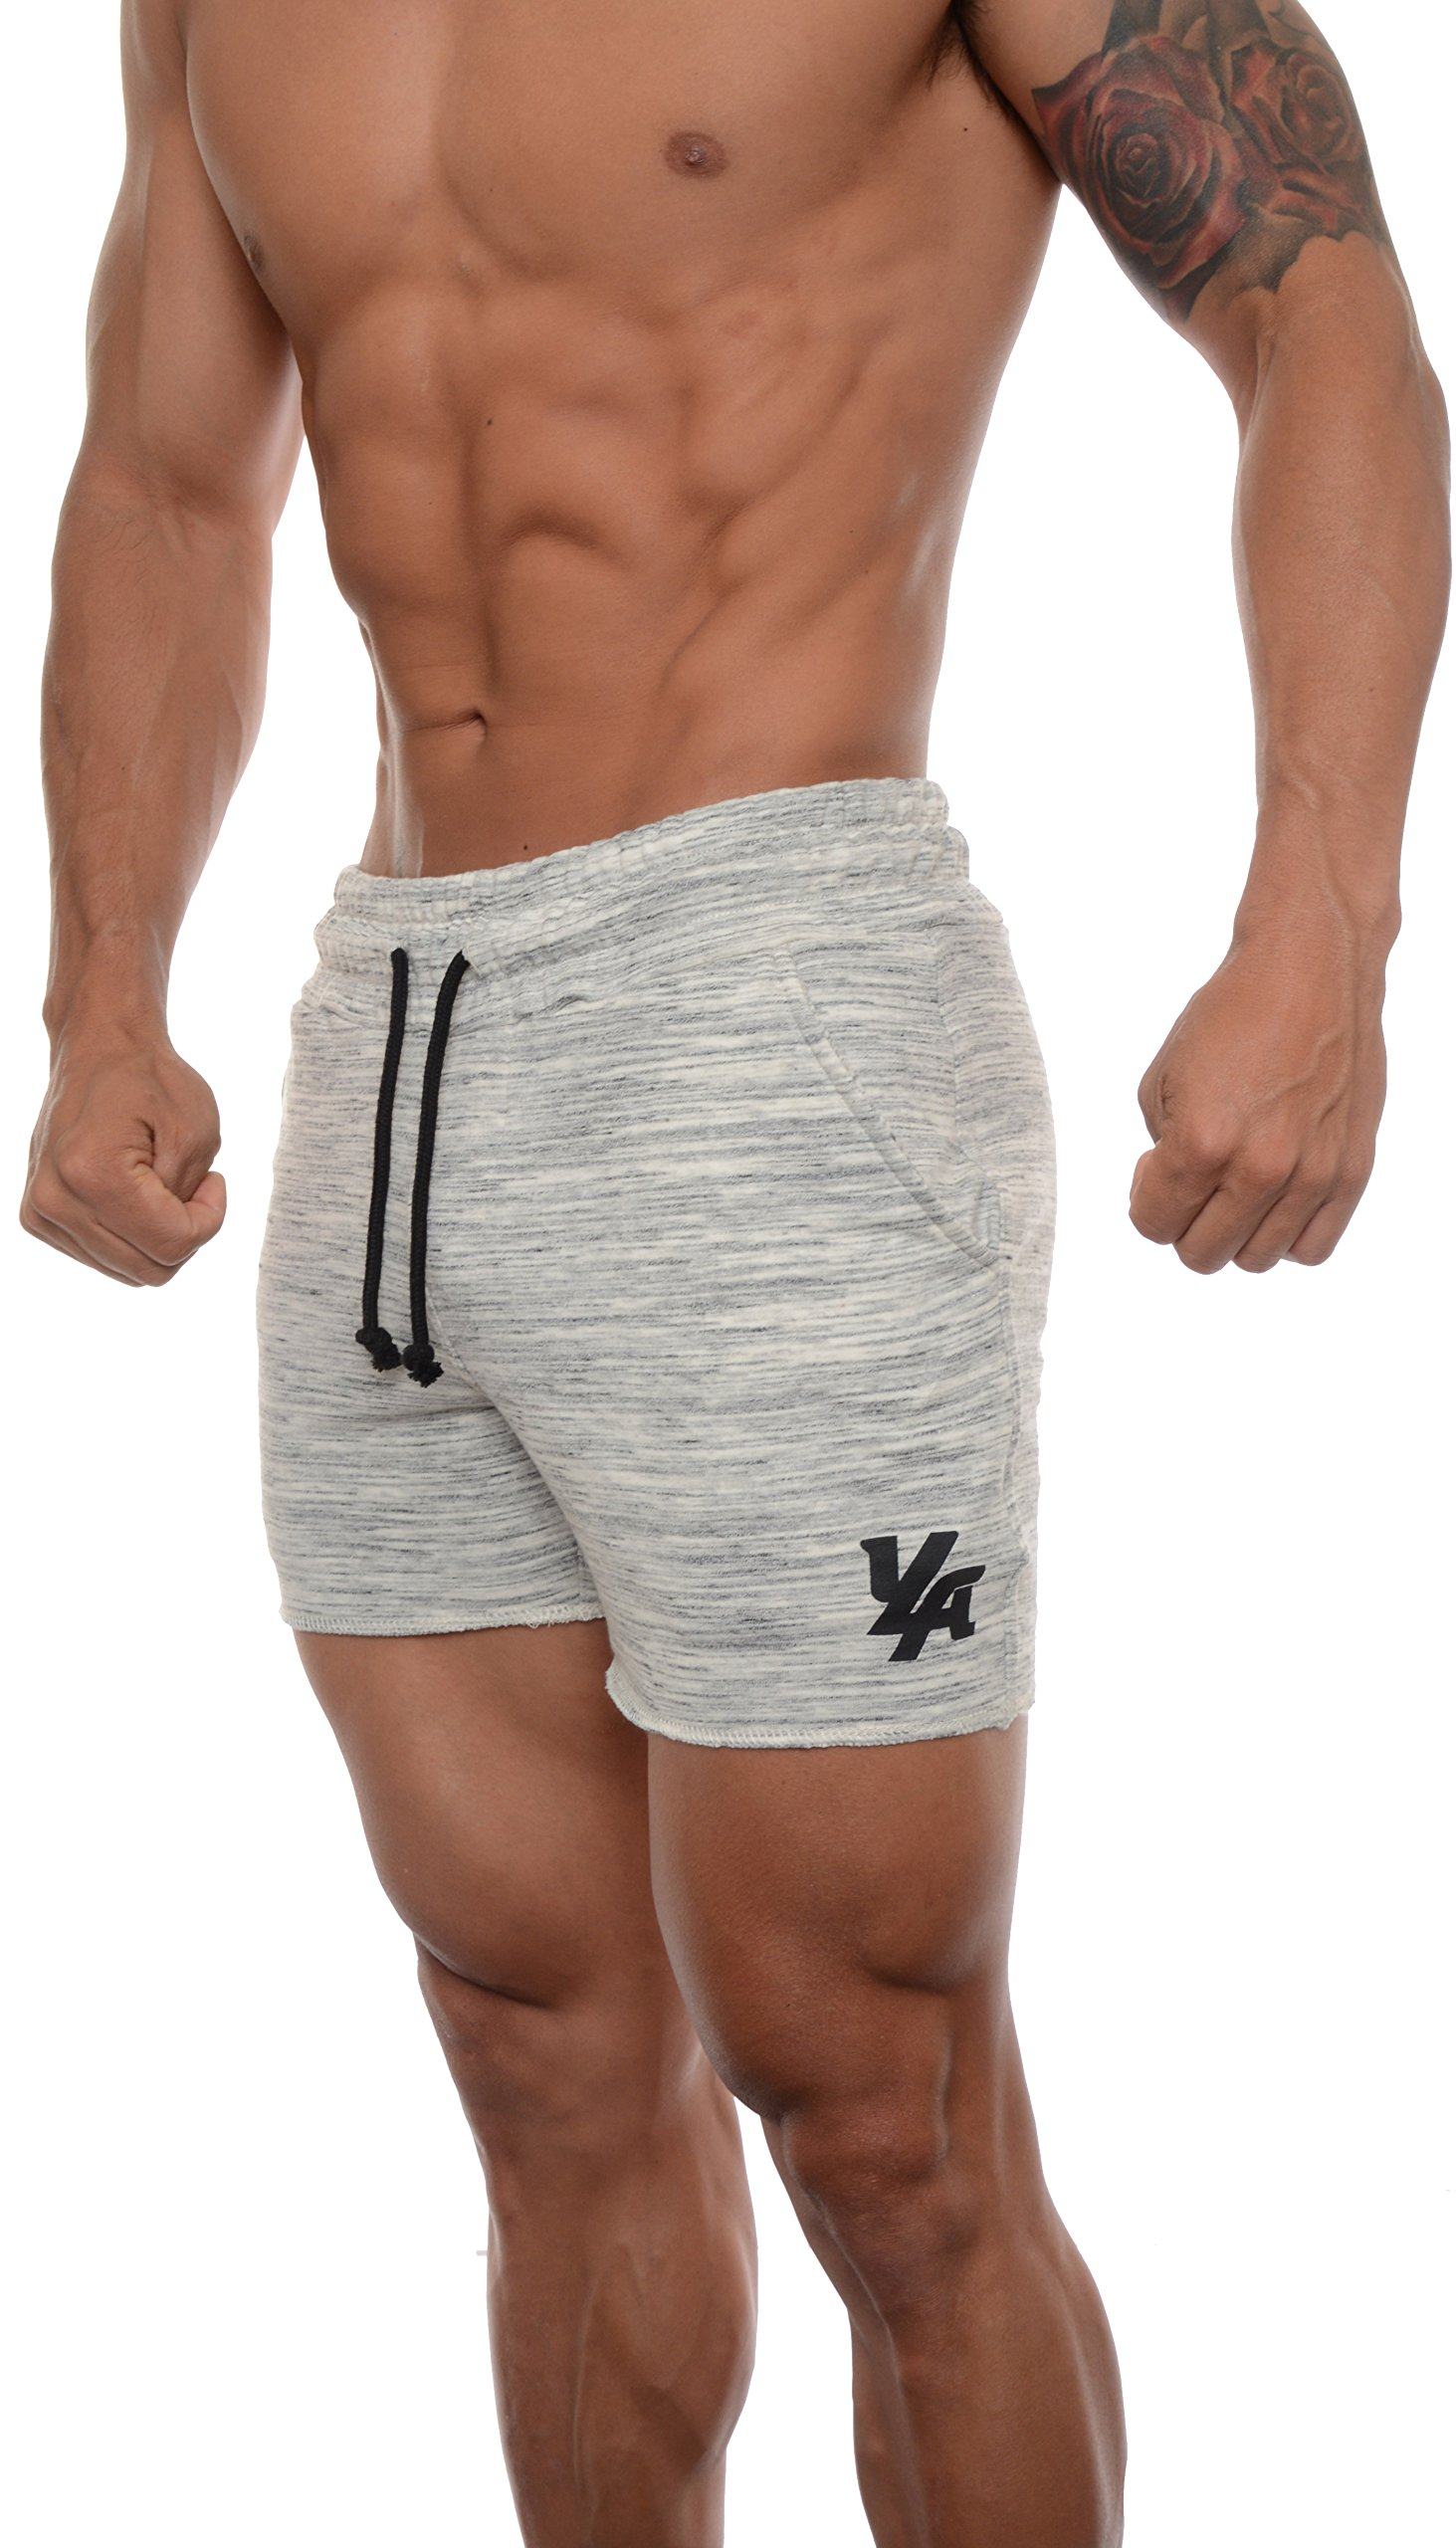 YoungLA Men's French Terry Solid Bodybuilding Gym Running Workout Shorts Marble Large